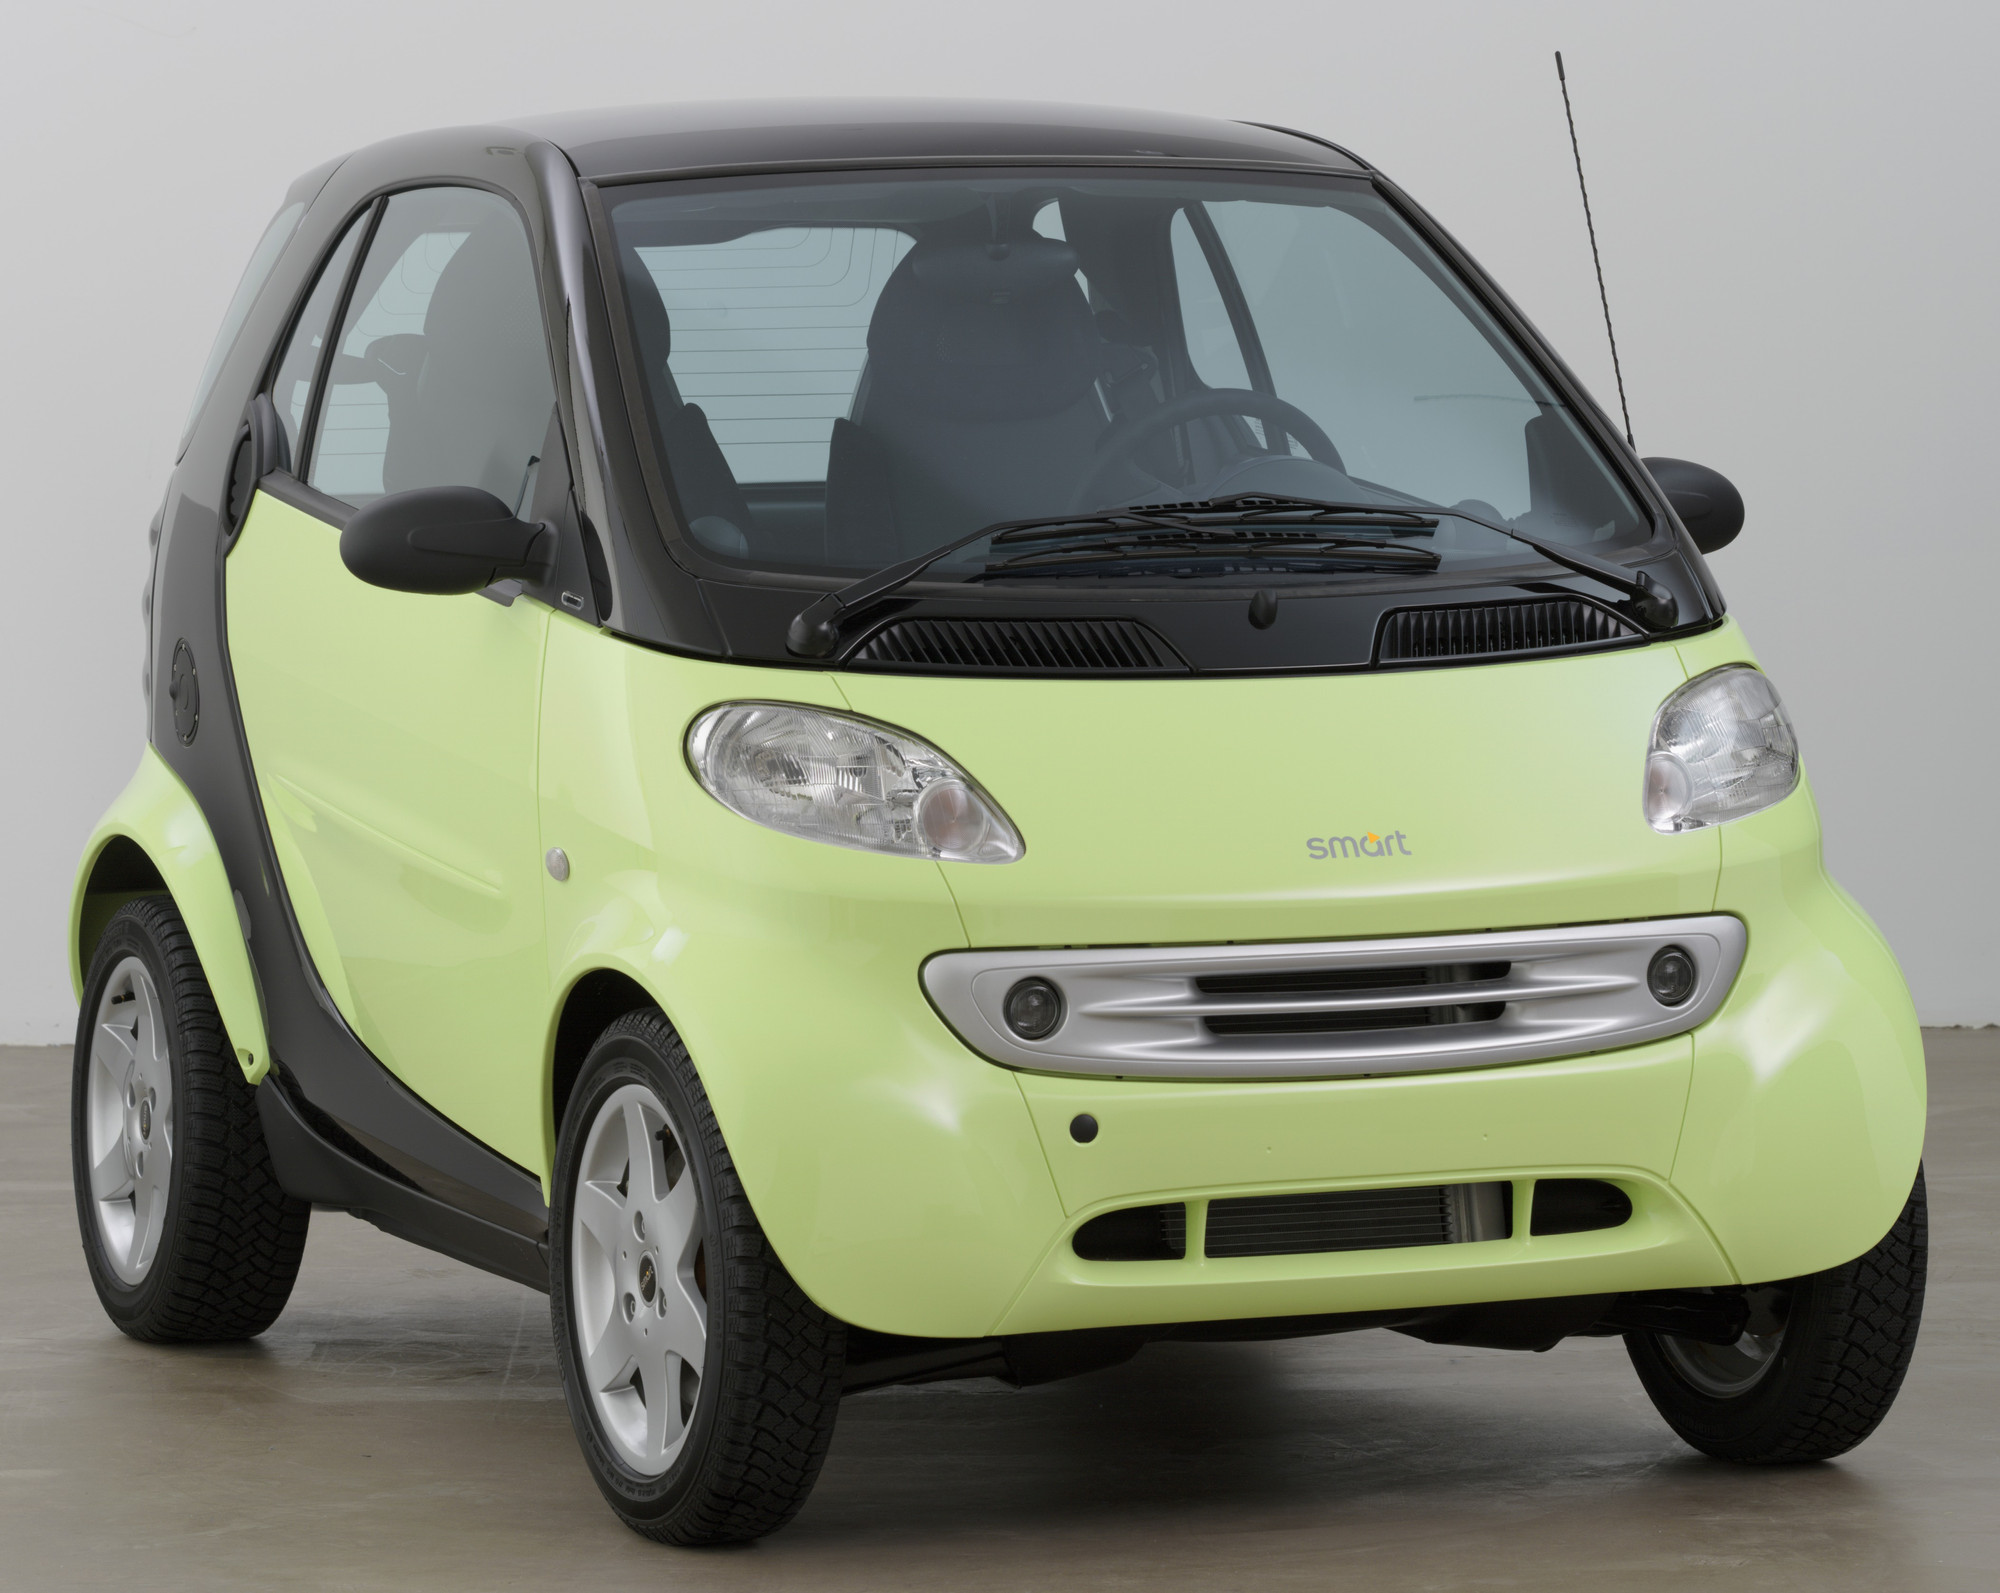 Micro Compact Car Smart Gmbh Renningen Germany And Hambach France